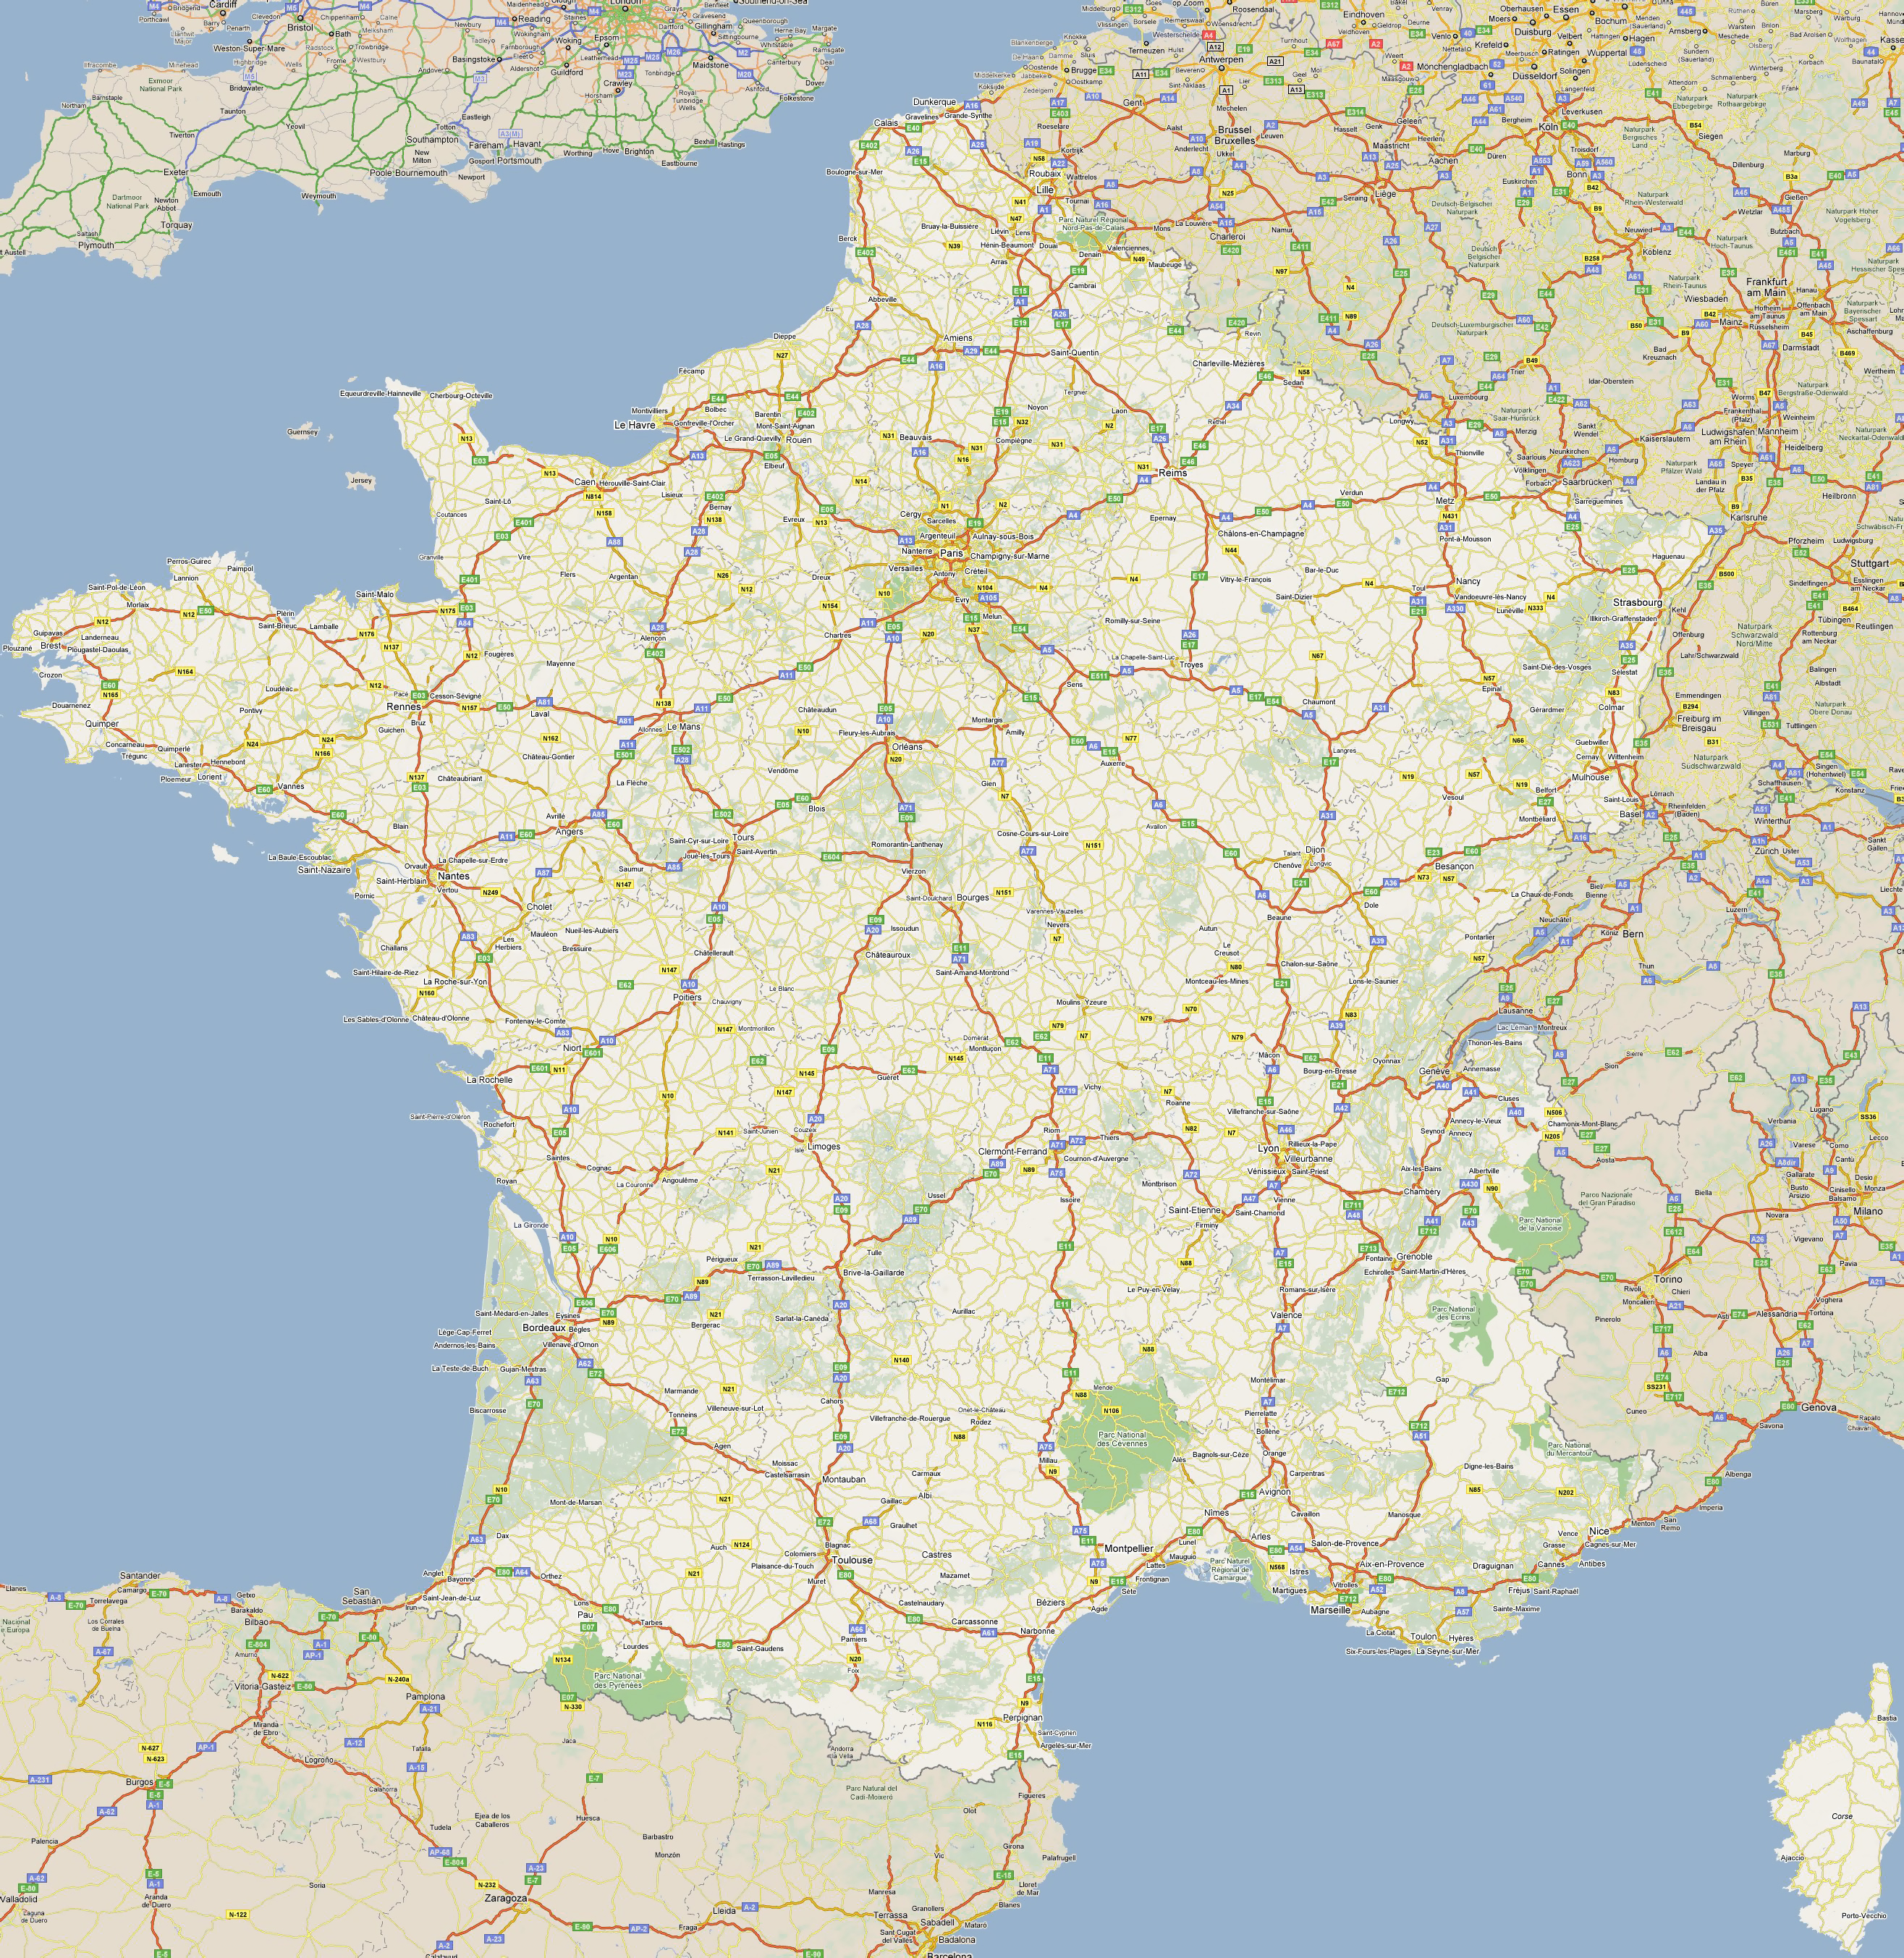 Detailed Road Map Of France.Large Road Map Of France With All Cities Vidiani Com Maps Of All